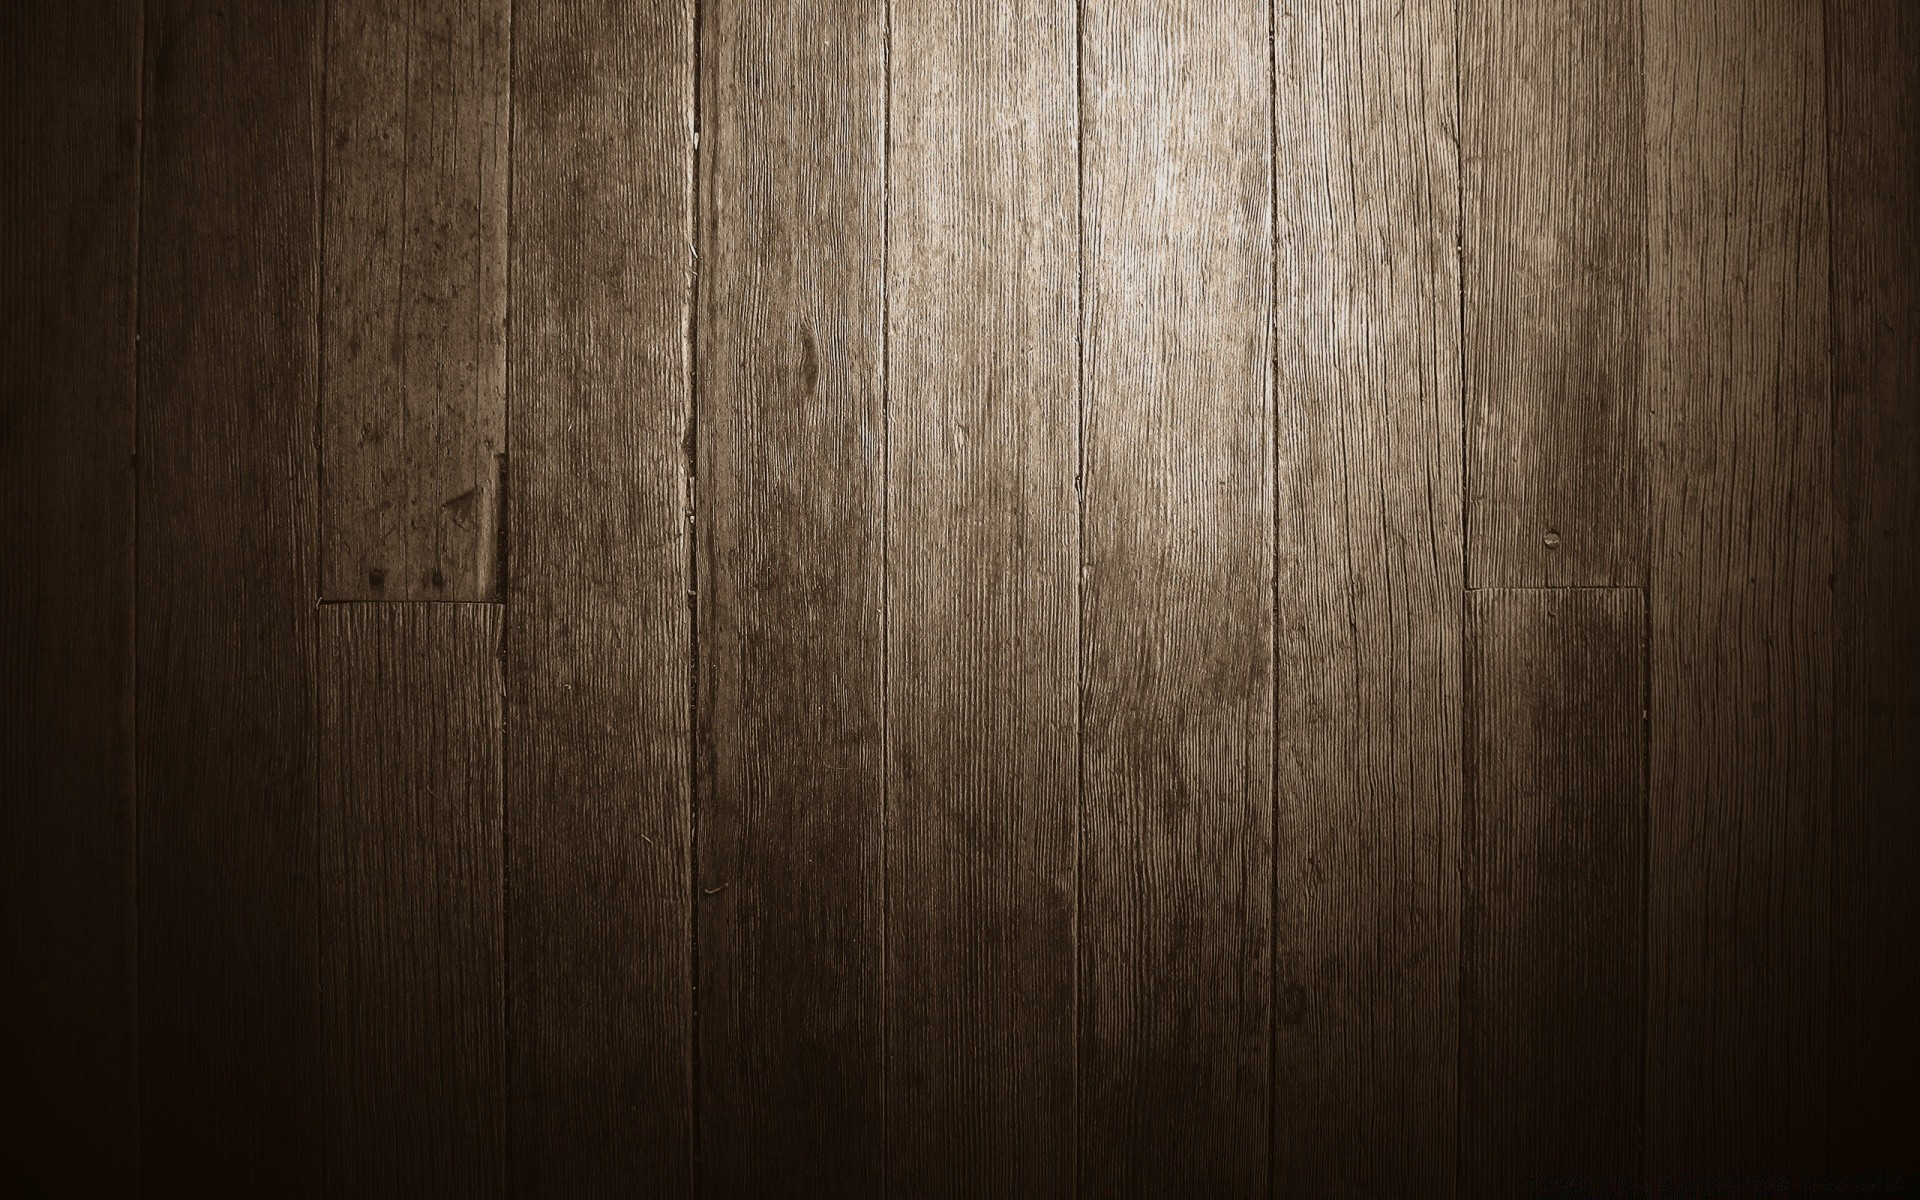 wooden floor android wallpapers for free